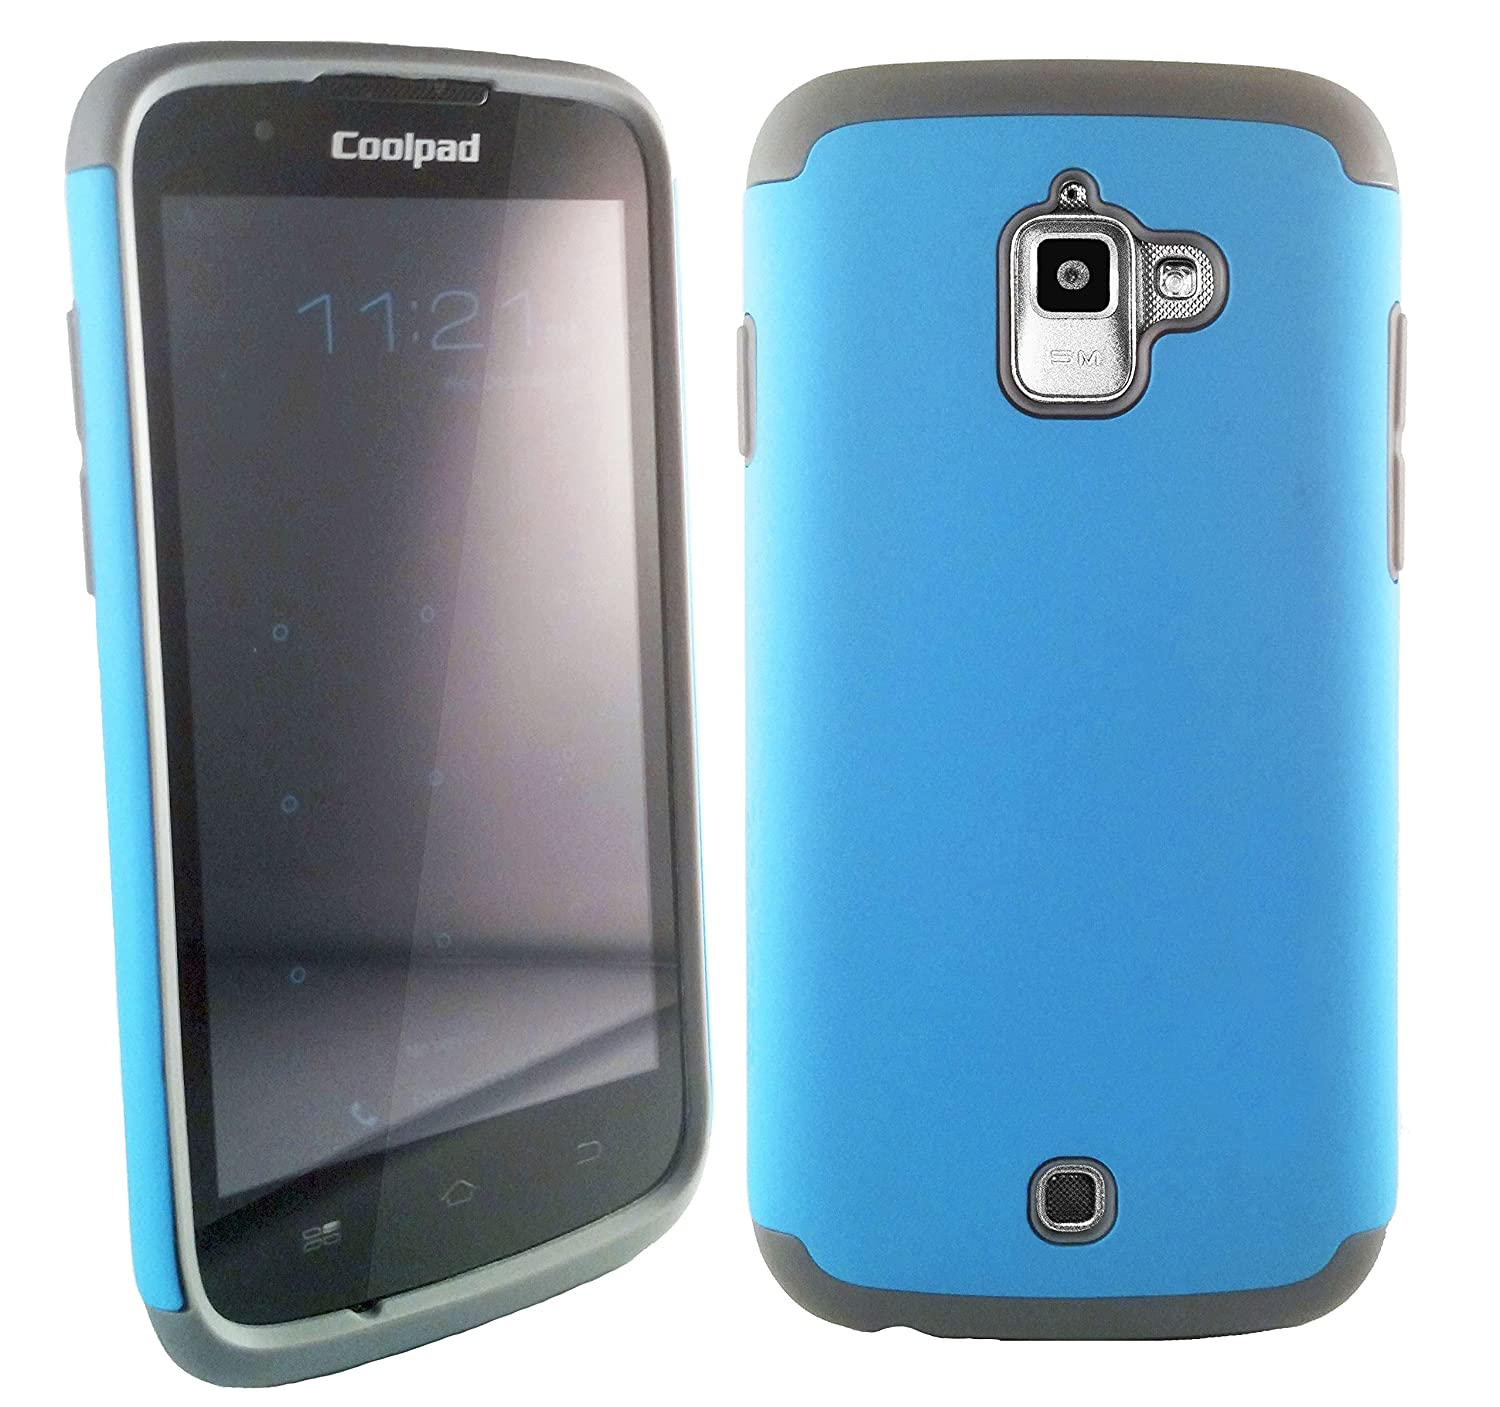 Amazon.com: Coolpad Quattro 2 (801e 801es) Case Cover - Zadikase Retail  Packaging - Free Screen Protector Film (Light Blue): Cell Phones &  Accessories